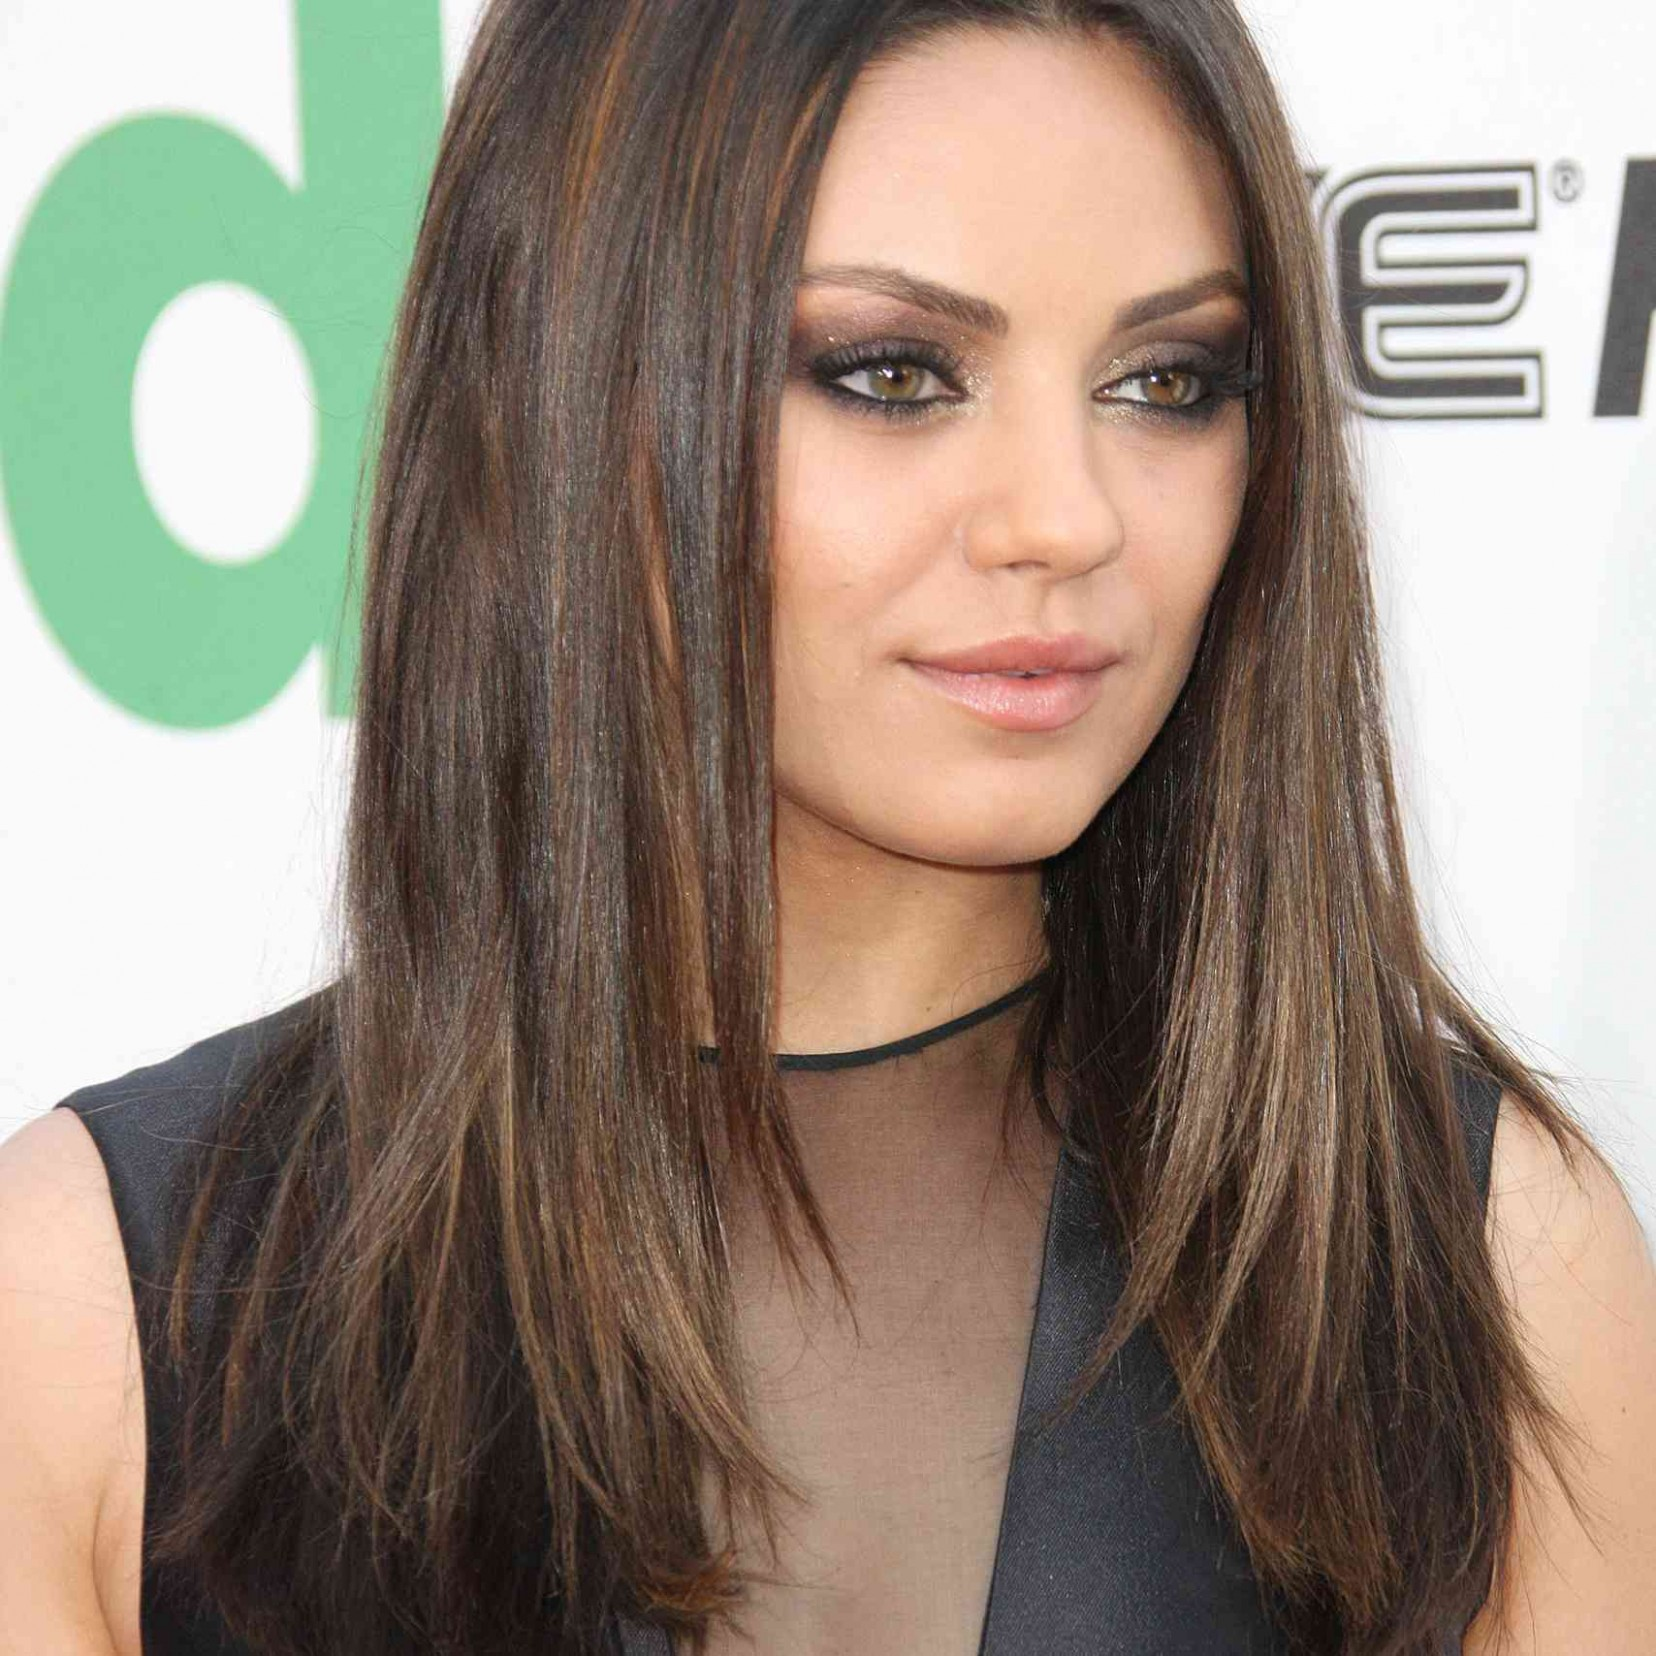 11 of the Best Hairstyles for Round Faces